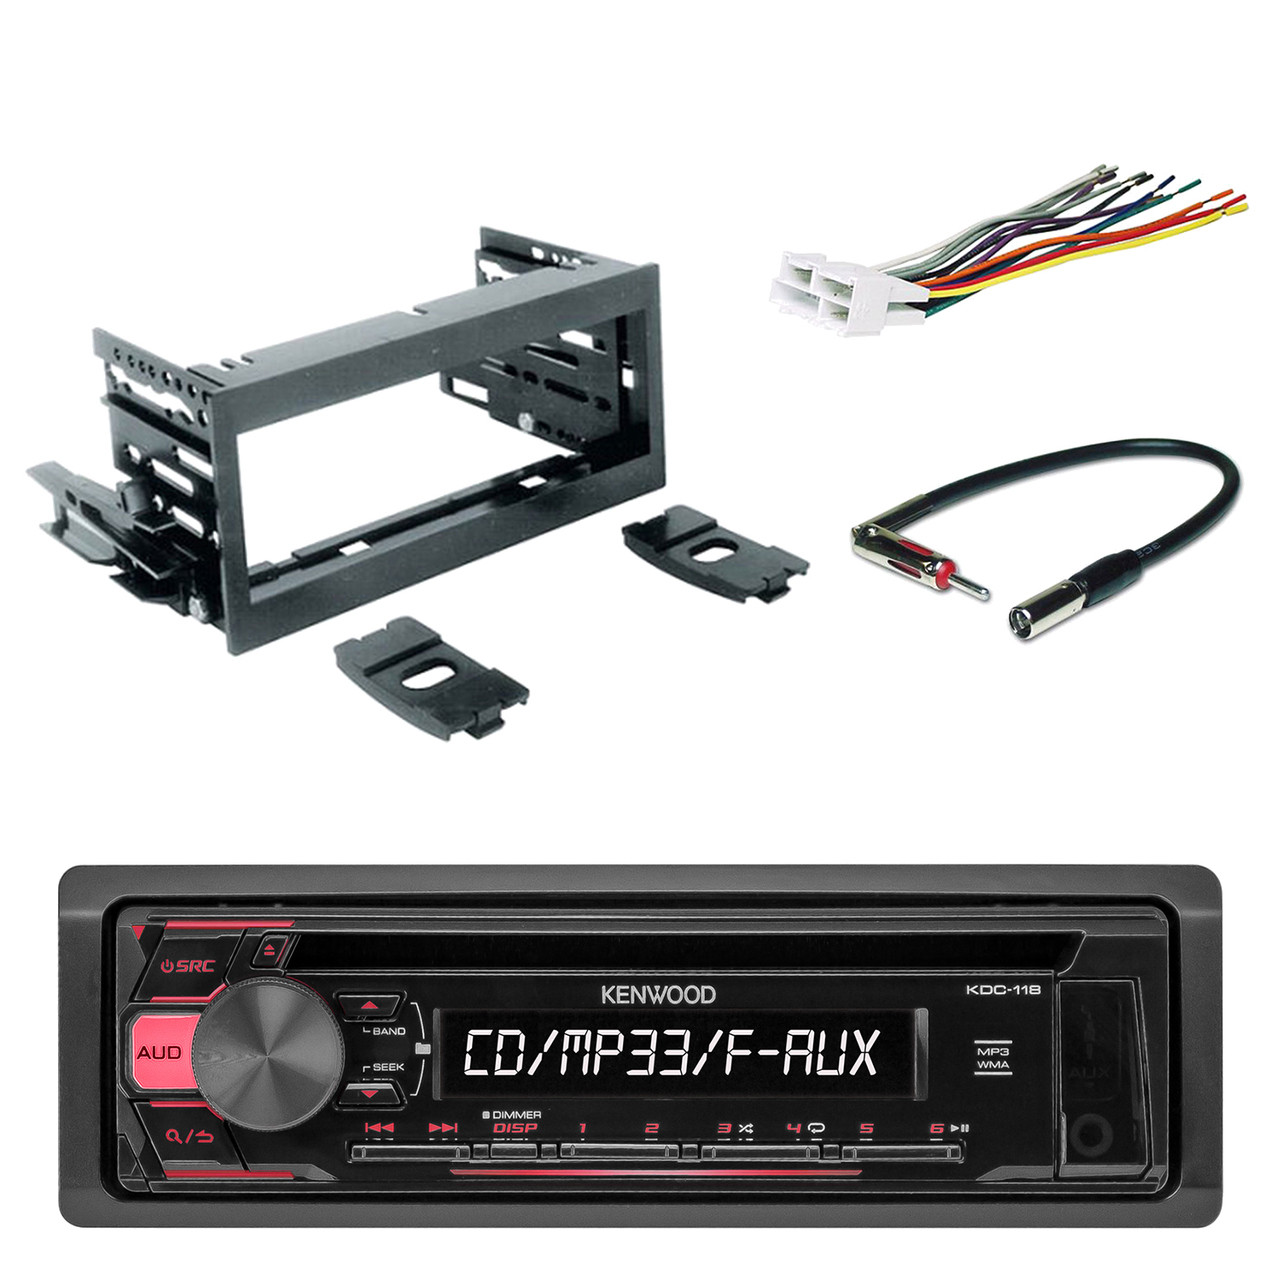 small resolution of kenwood in dash single din cd player aux car stereo receiver withkenwood in dash single din